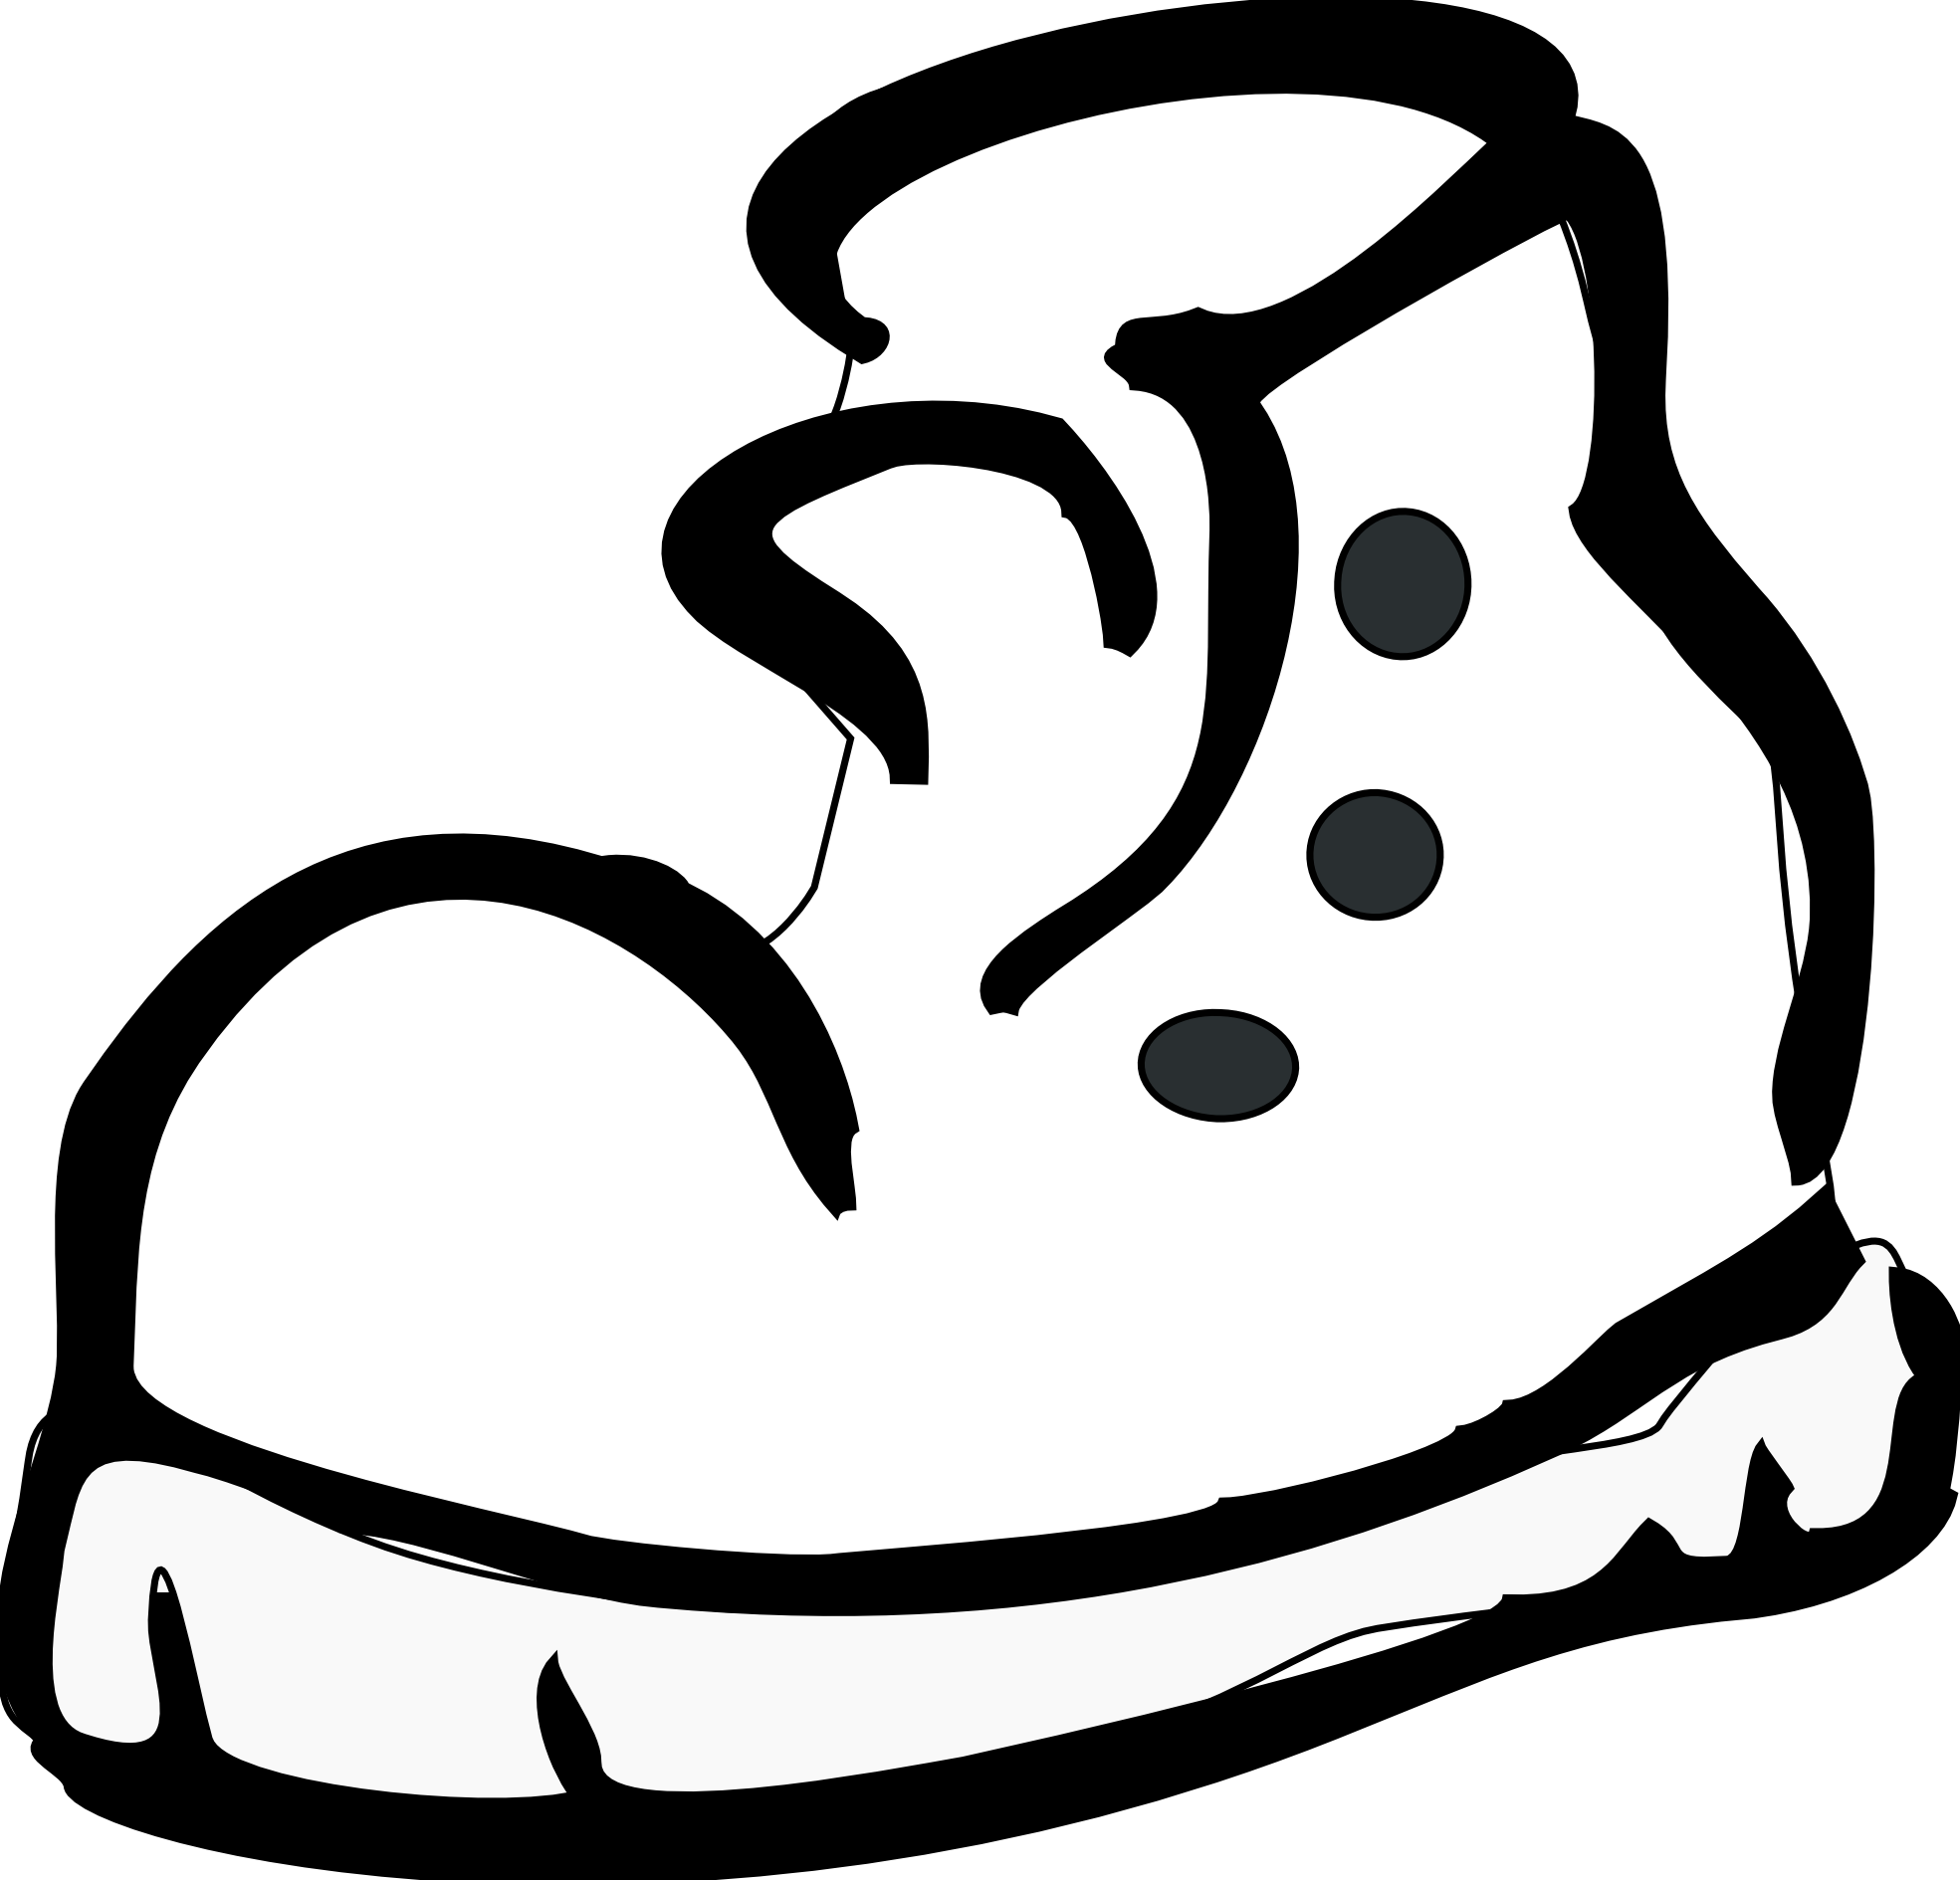 1969x1889 Track Shoe Clipart Clip Art Library 5